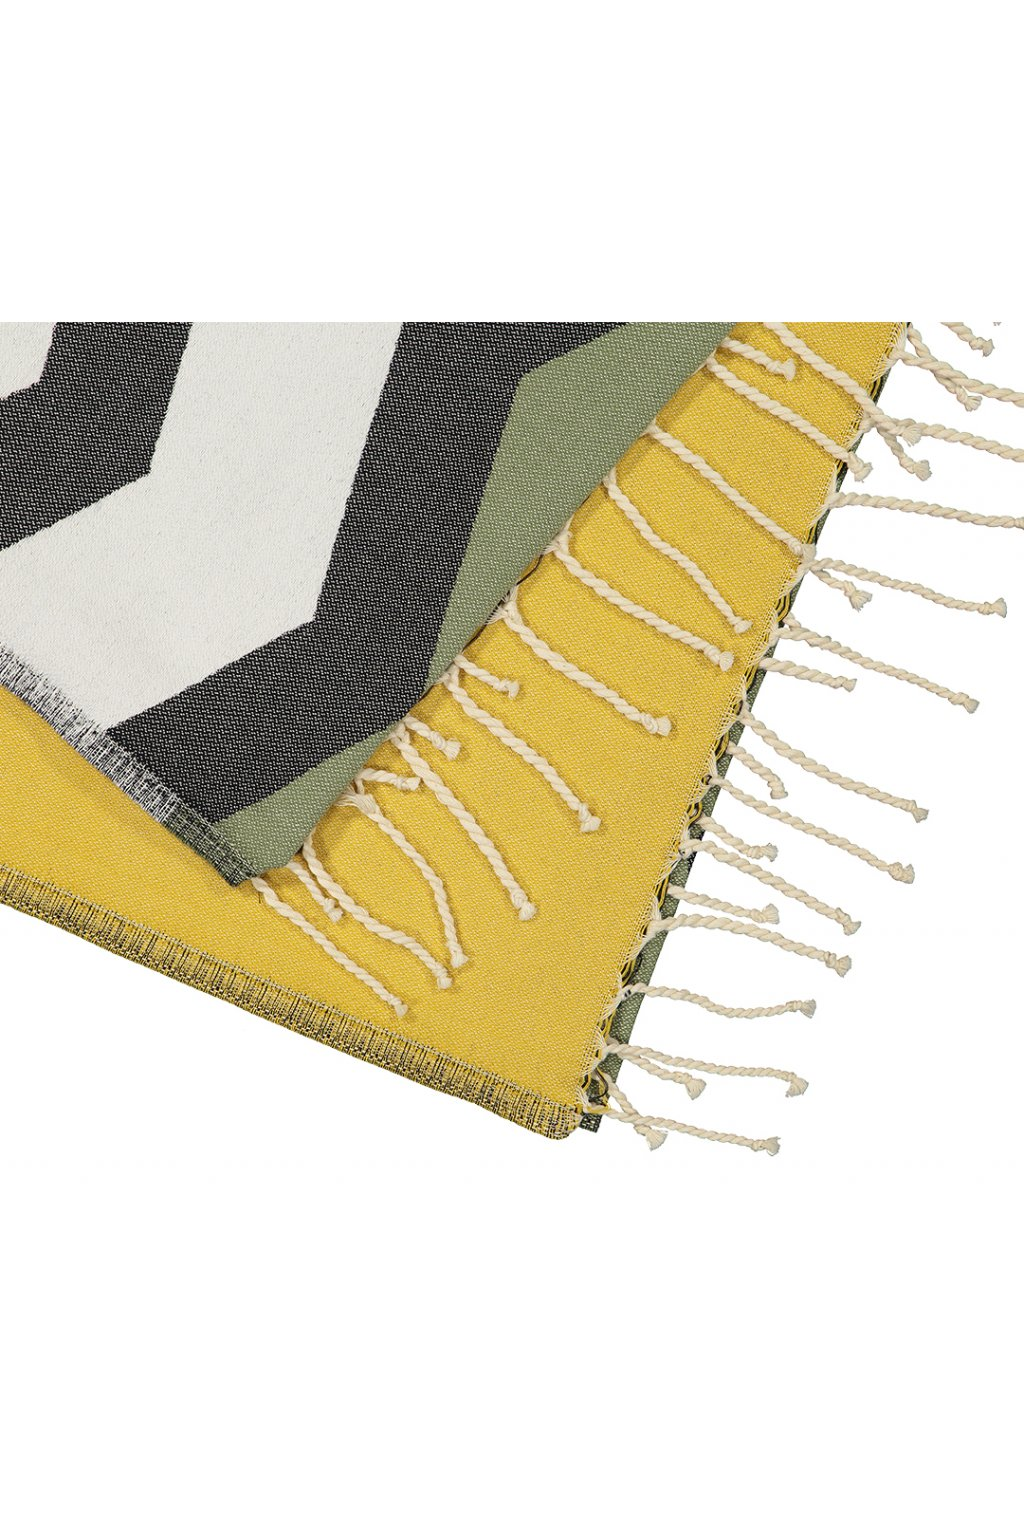 Futah Beach Towel odeceixe black & mustard Detail